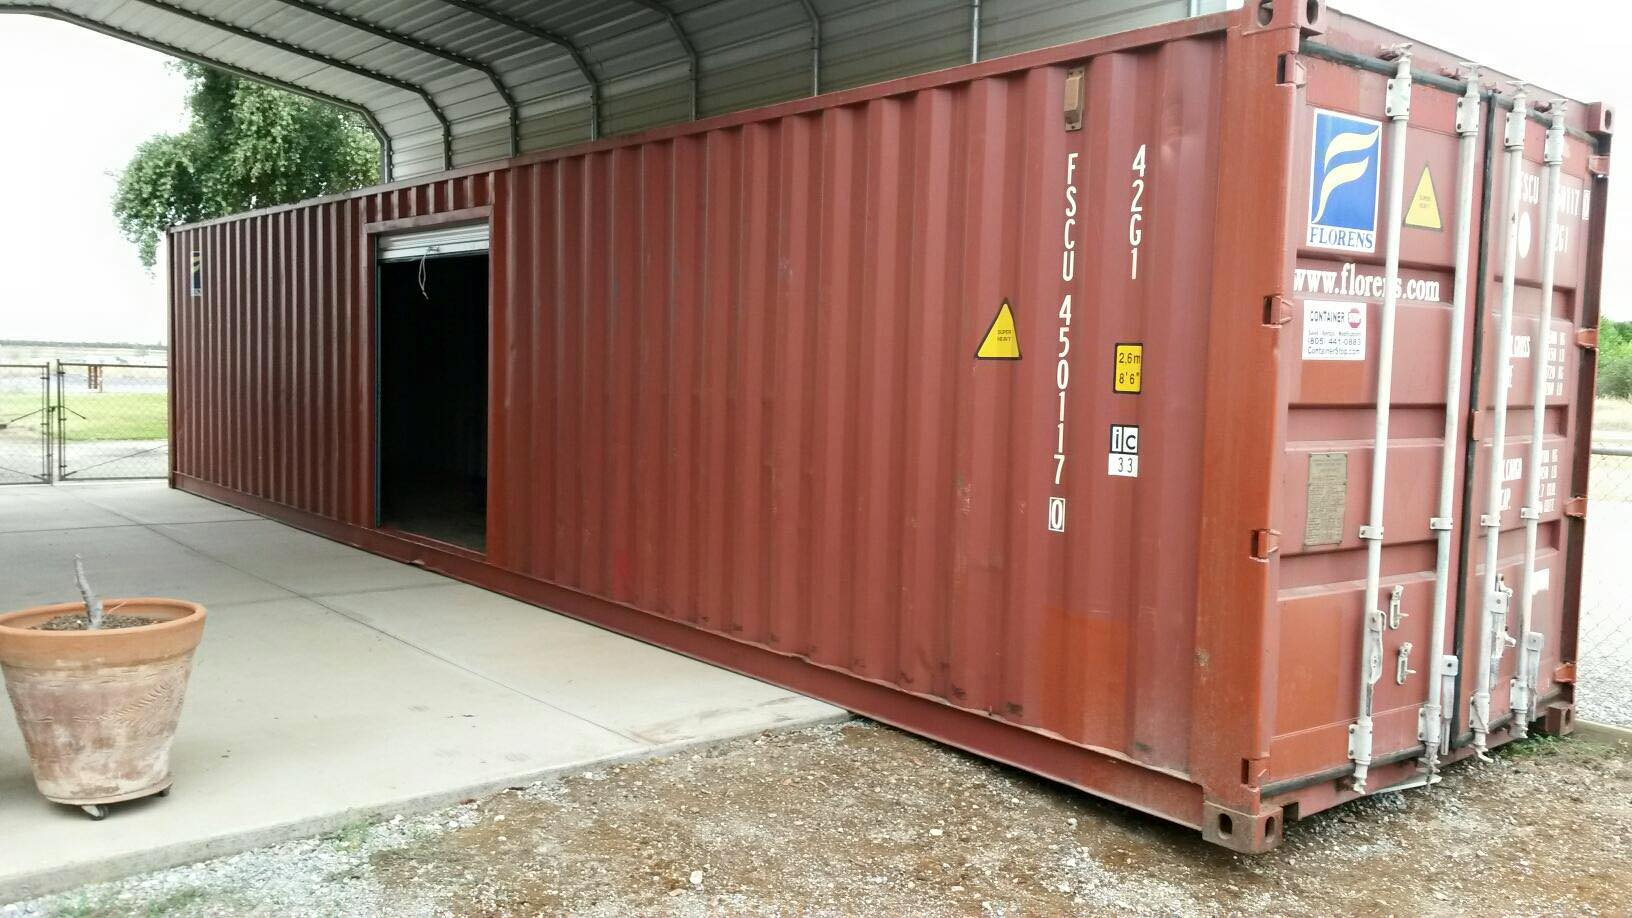 Incroyable San Luis Obispo Storage Container Provider, Container Stop, Releases Report  On Tips To Consider When Buying A Storage Container